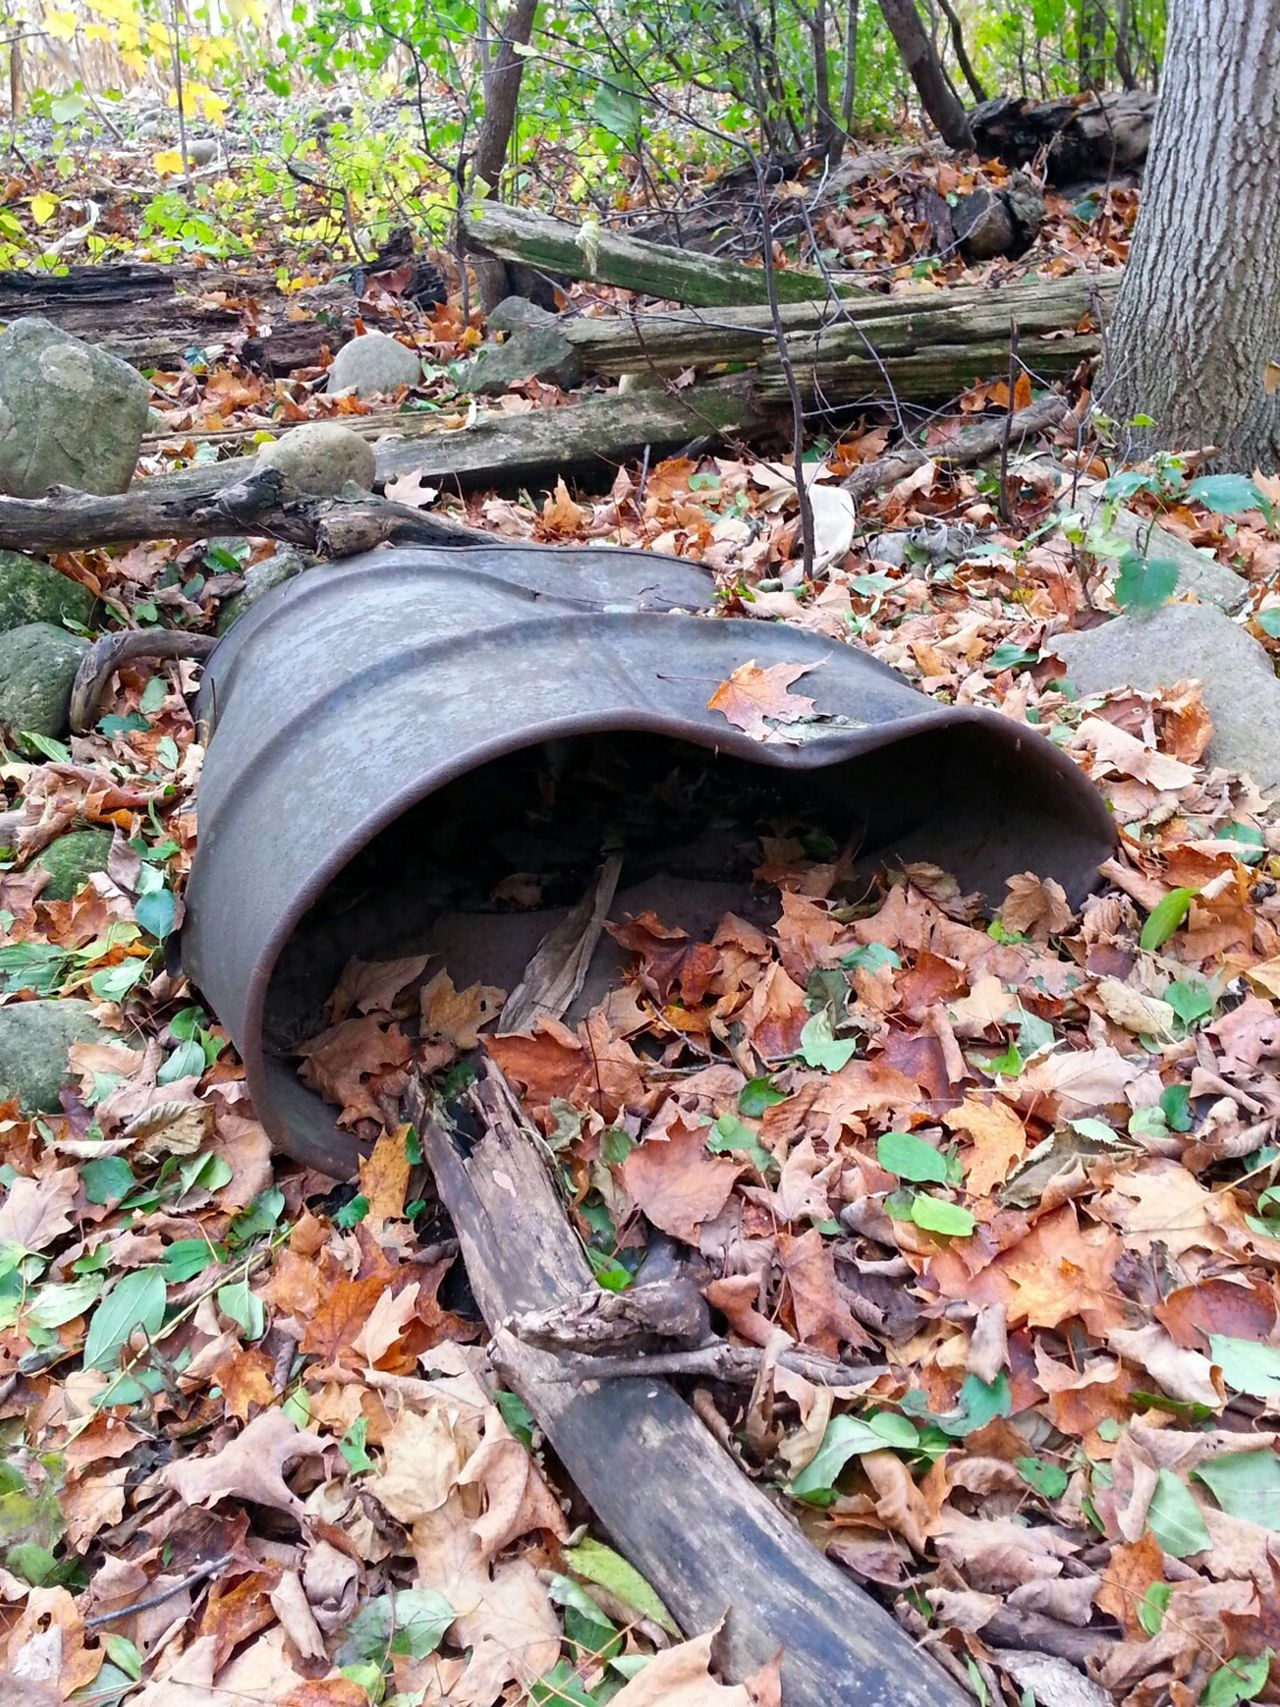 Man And Nature Justaposition RustedMetal Barrel Autumn Leaves